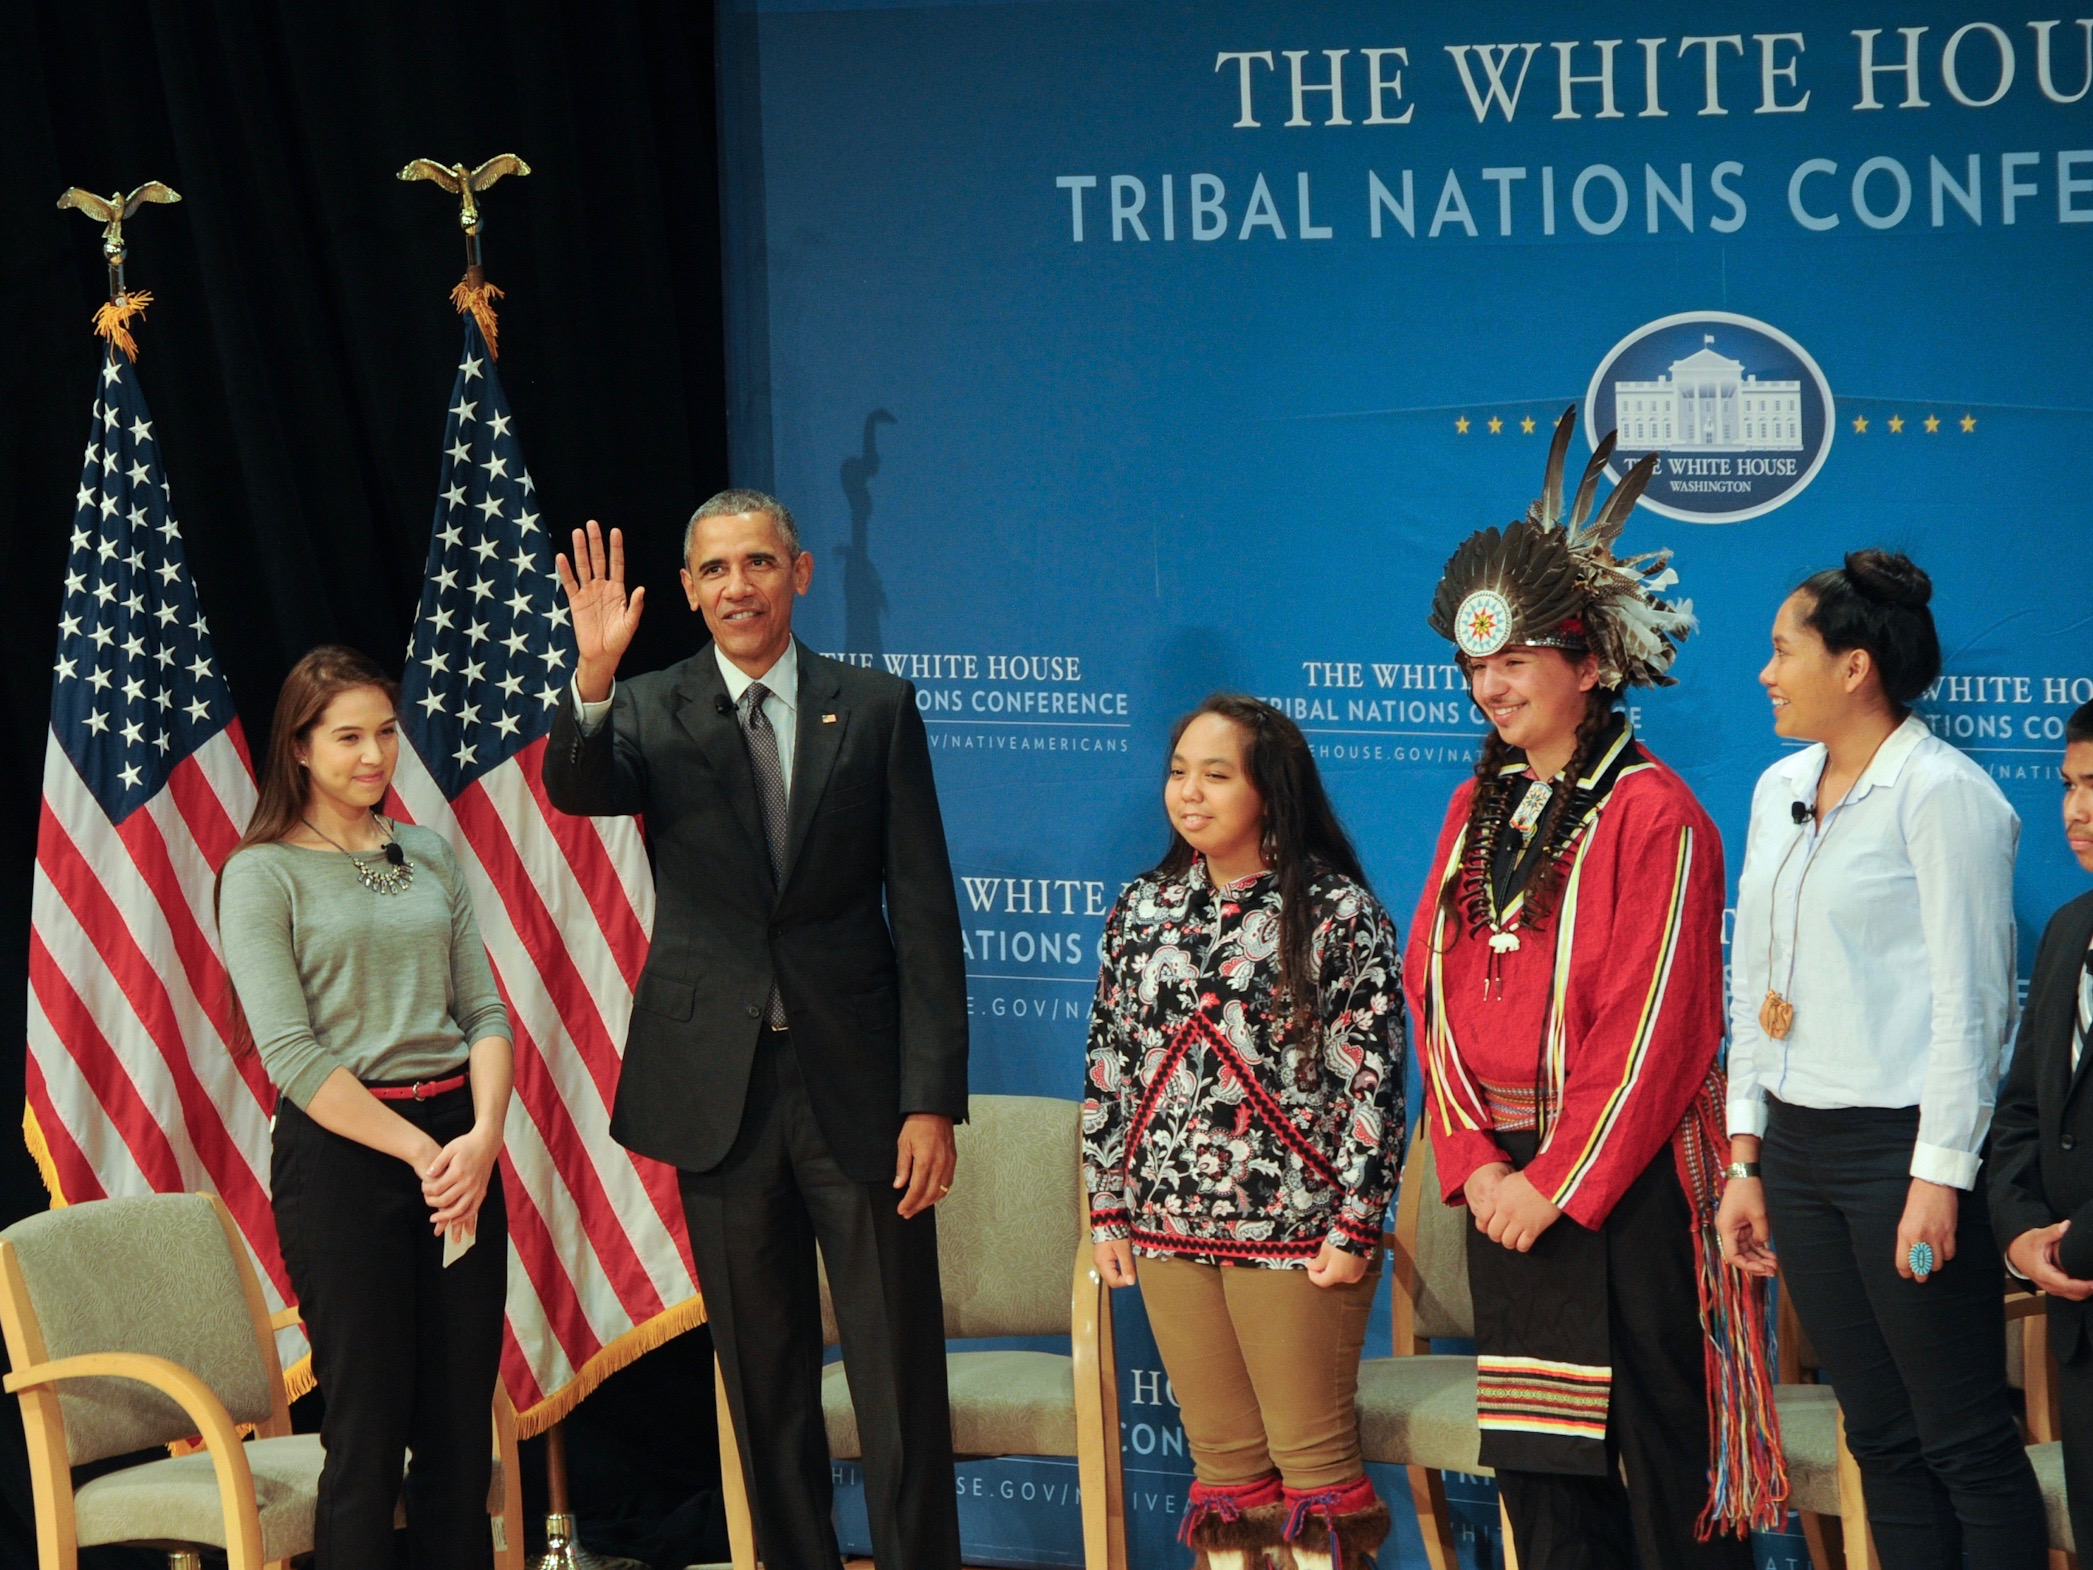 Obama administration asks tribes about infrastructure projects